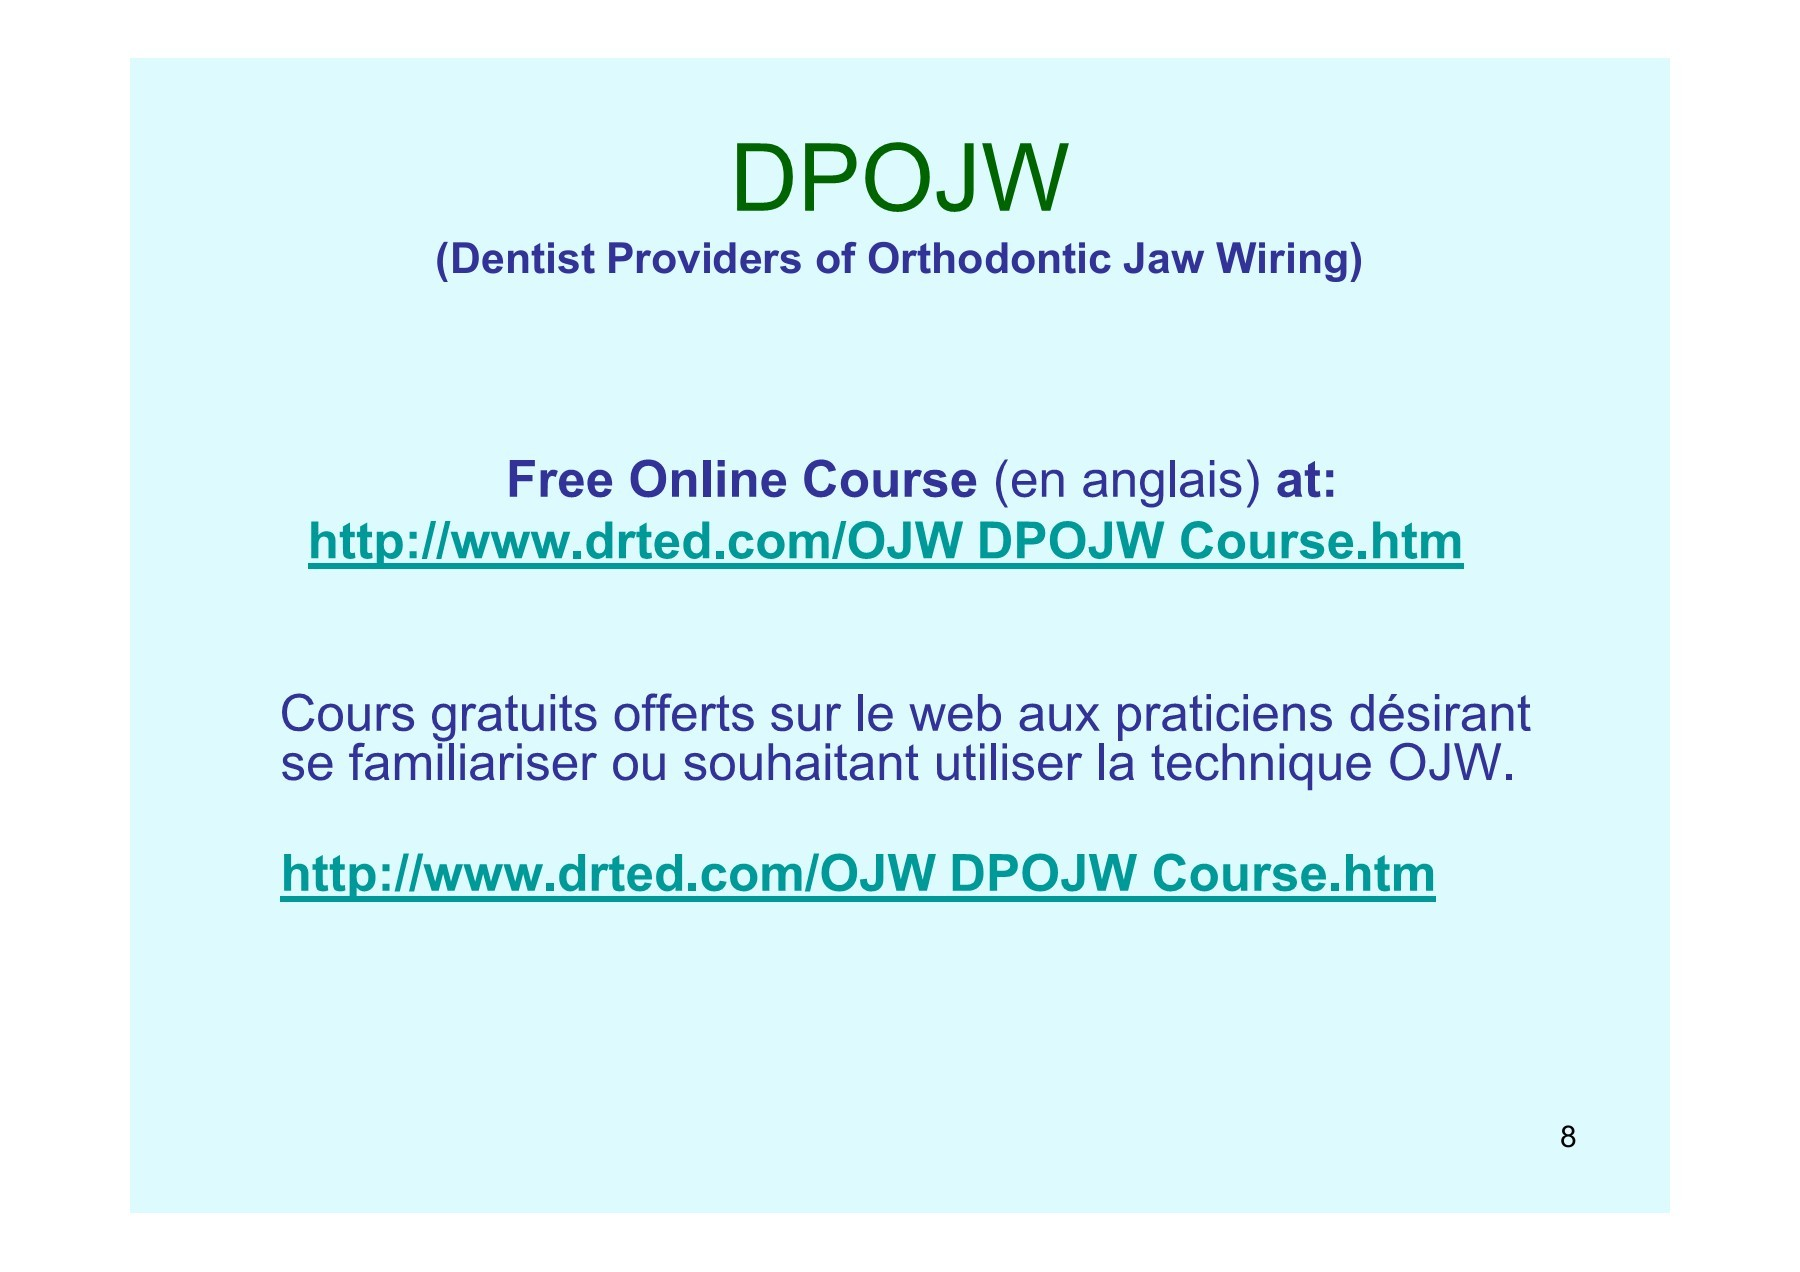 Pleasant Orthodontic Jaw Wiring The Dental Professions Role In The Focusky Wiring Digital Resources Cettecompassionincorg